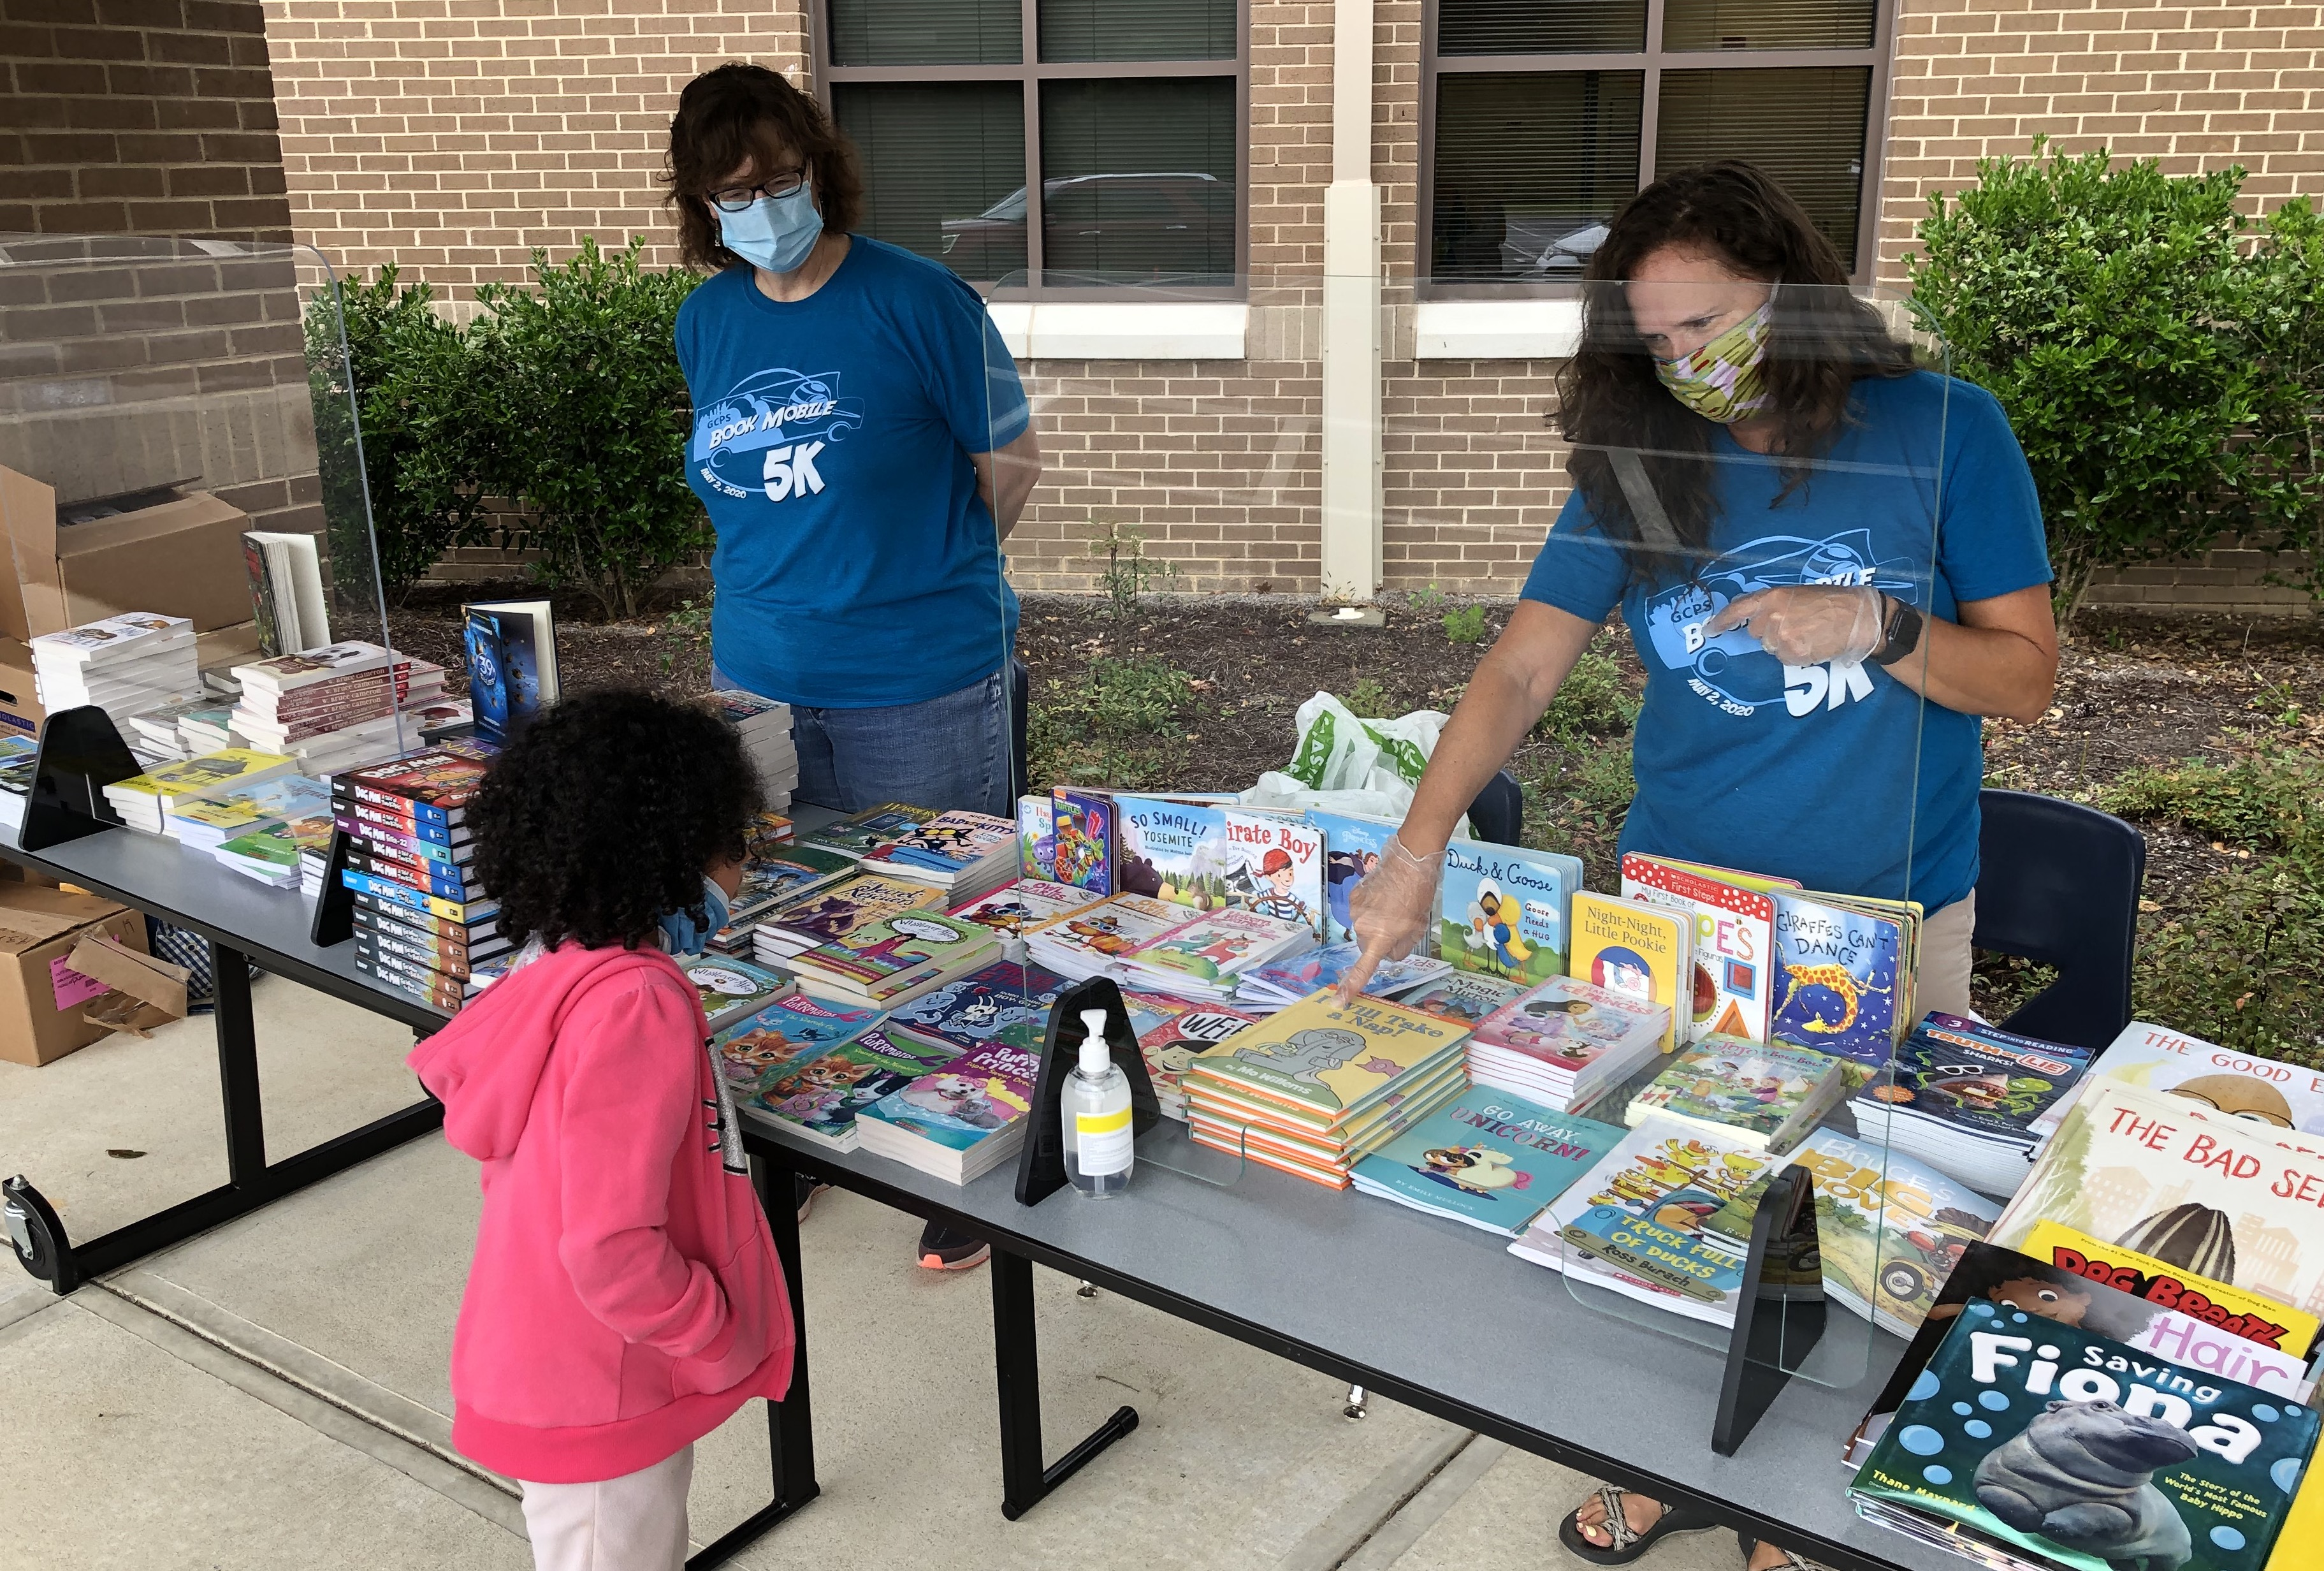 Gwinnett County Public Schools media specialists offer two new books to a student as part of the district's Books 2 Kids program that will run throughout the summer to encourage reading at home.